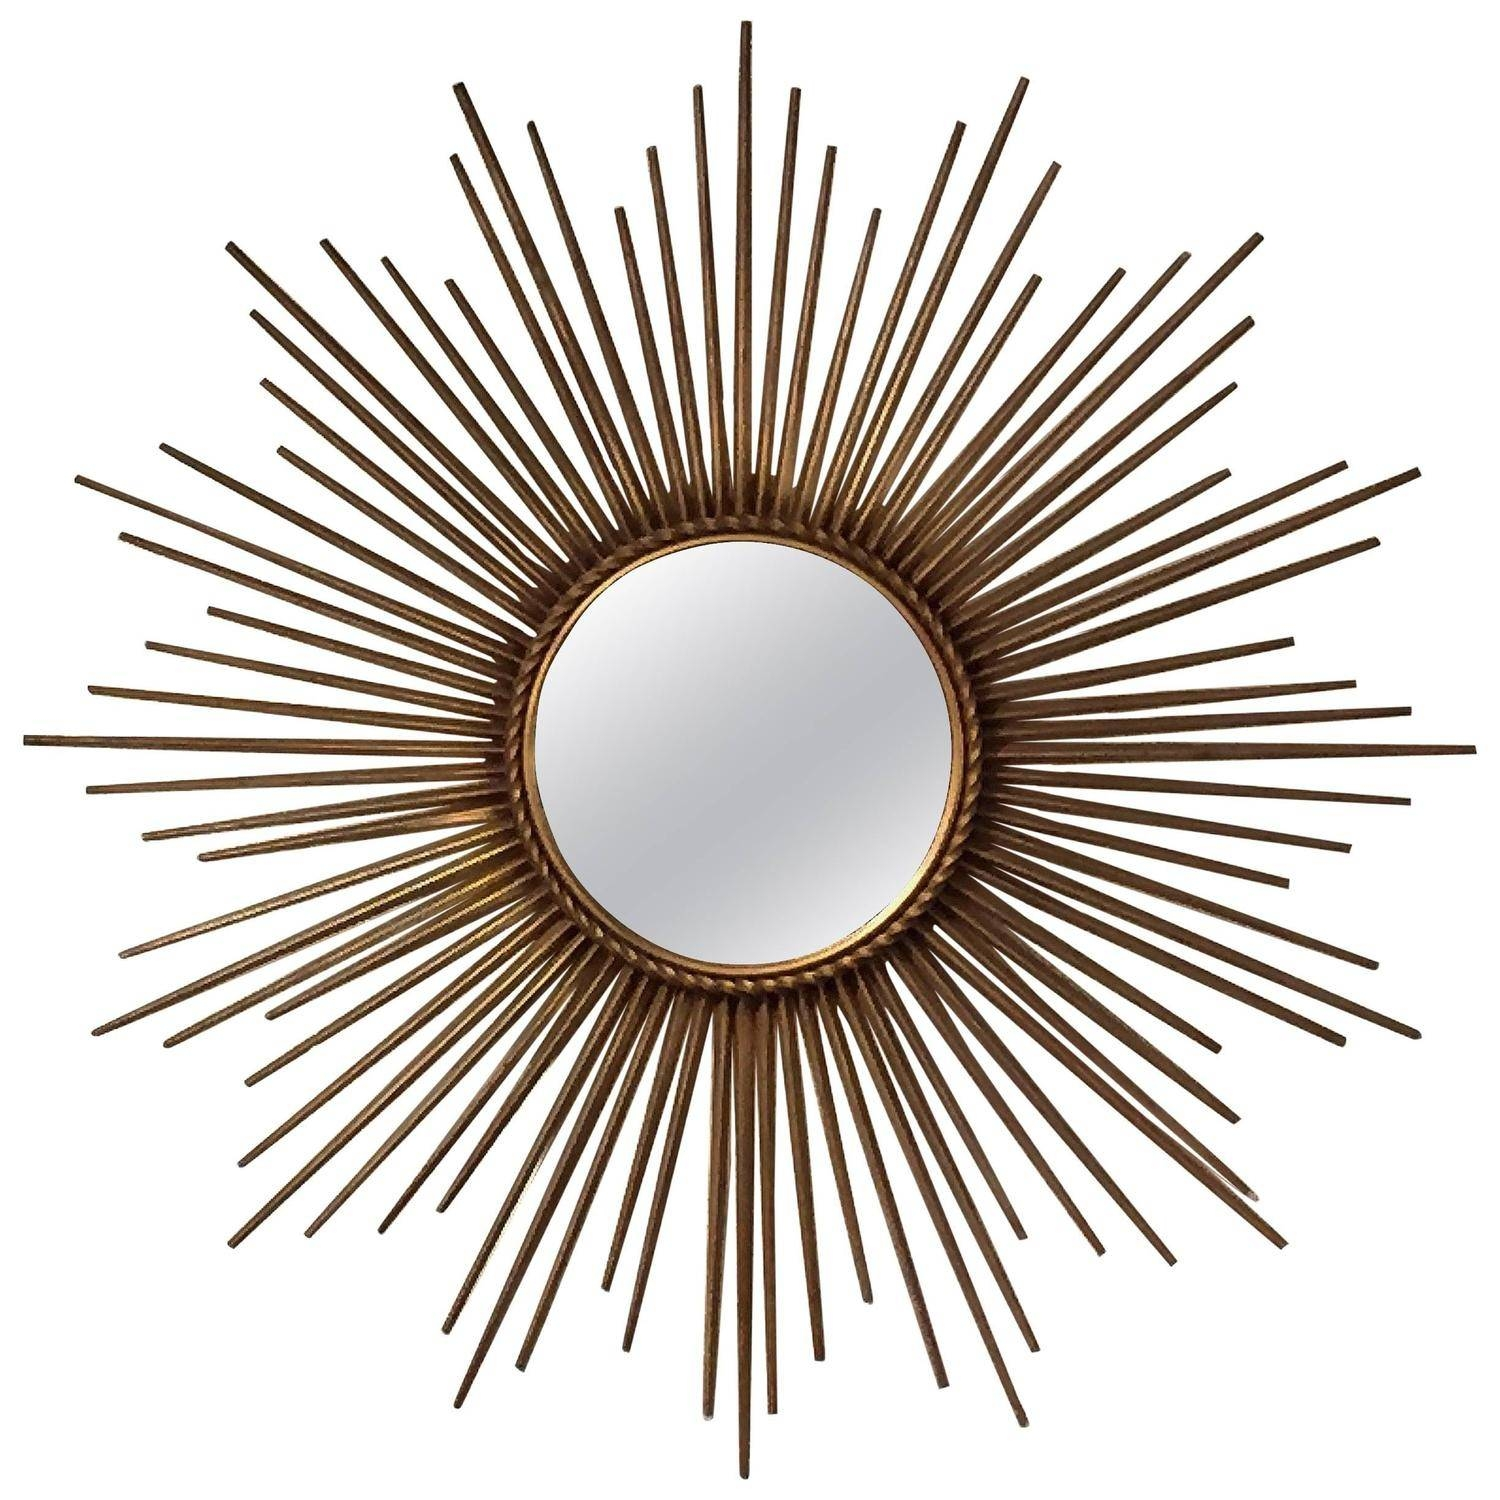 French Gilt Sunburst Or Starburst Mirrorchaty Vallauris At 1Stdibs inside Starburst Convex Mirrors (Image 5 of 15)